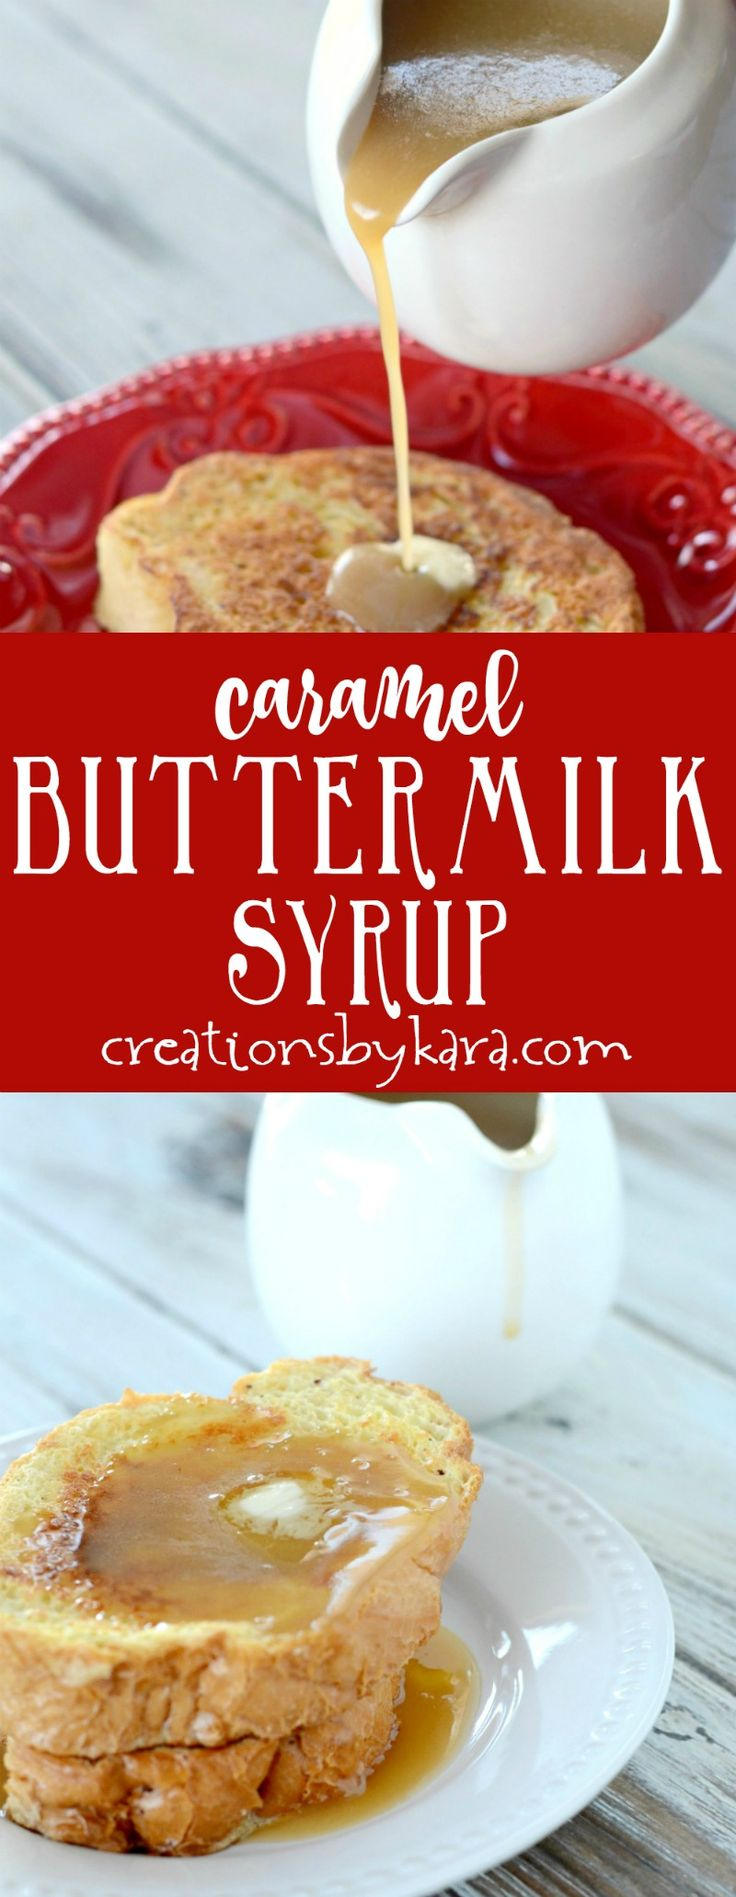 Epic Caramel Buttermilk Syrup - this syrup is outstanding! Serve it over French toast, pancakes, or waffles for an amazing breakfast. #syrup #breakfast #buttermilksyrup